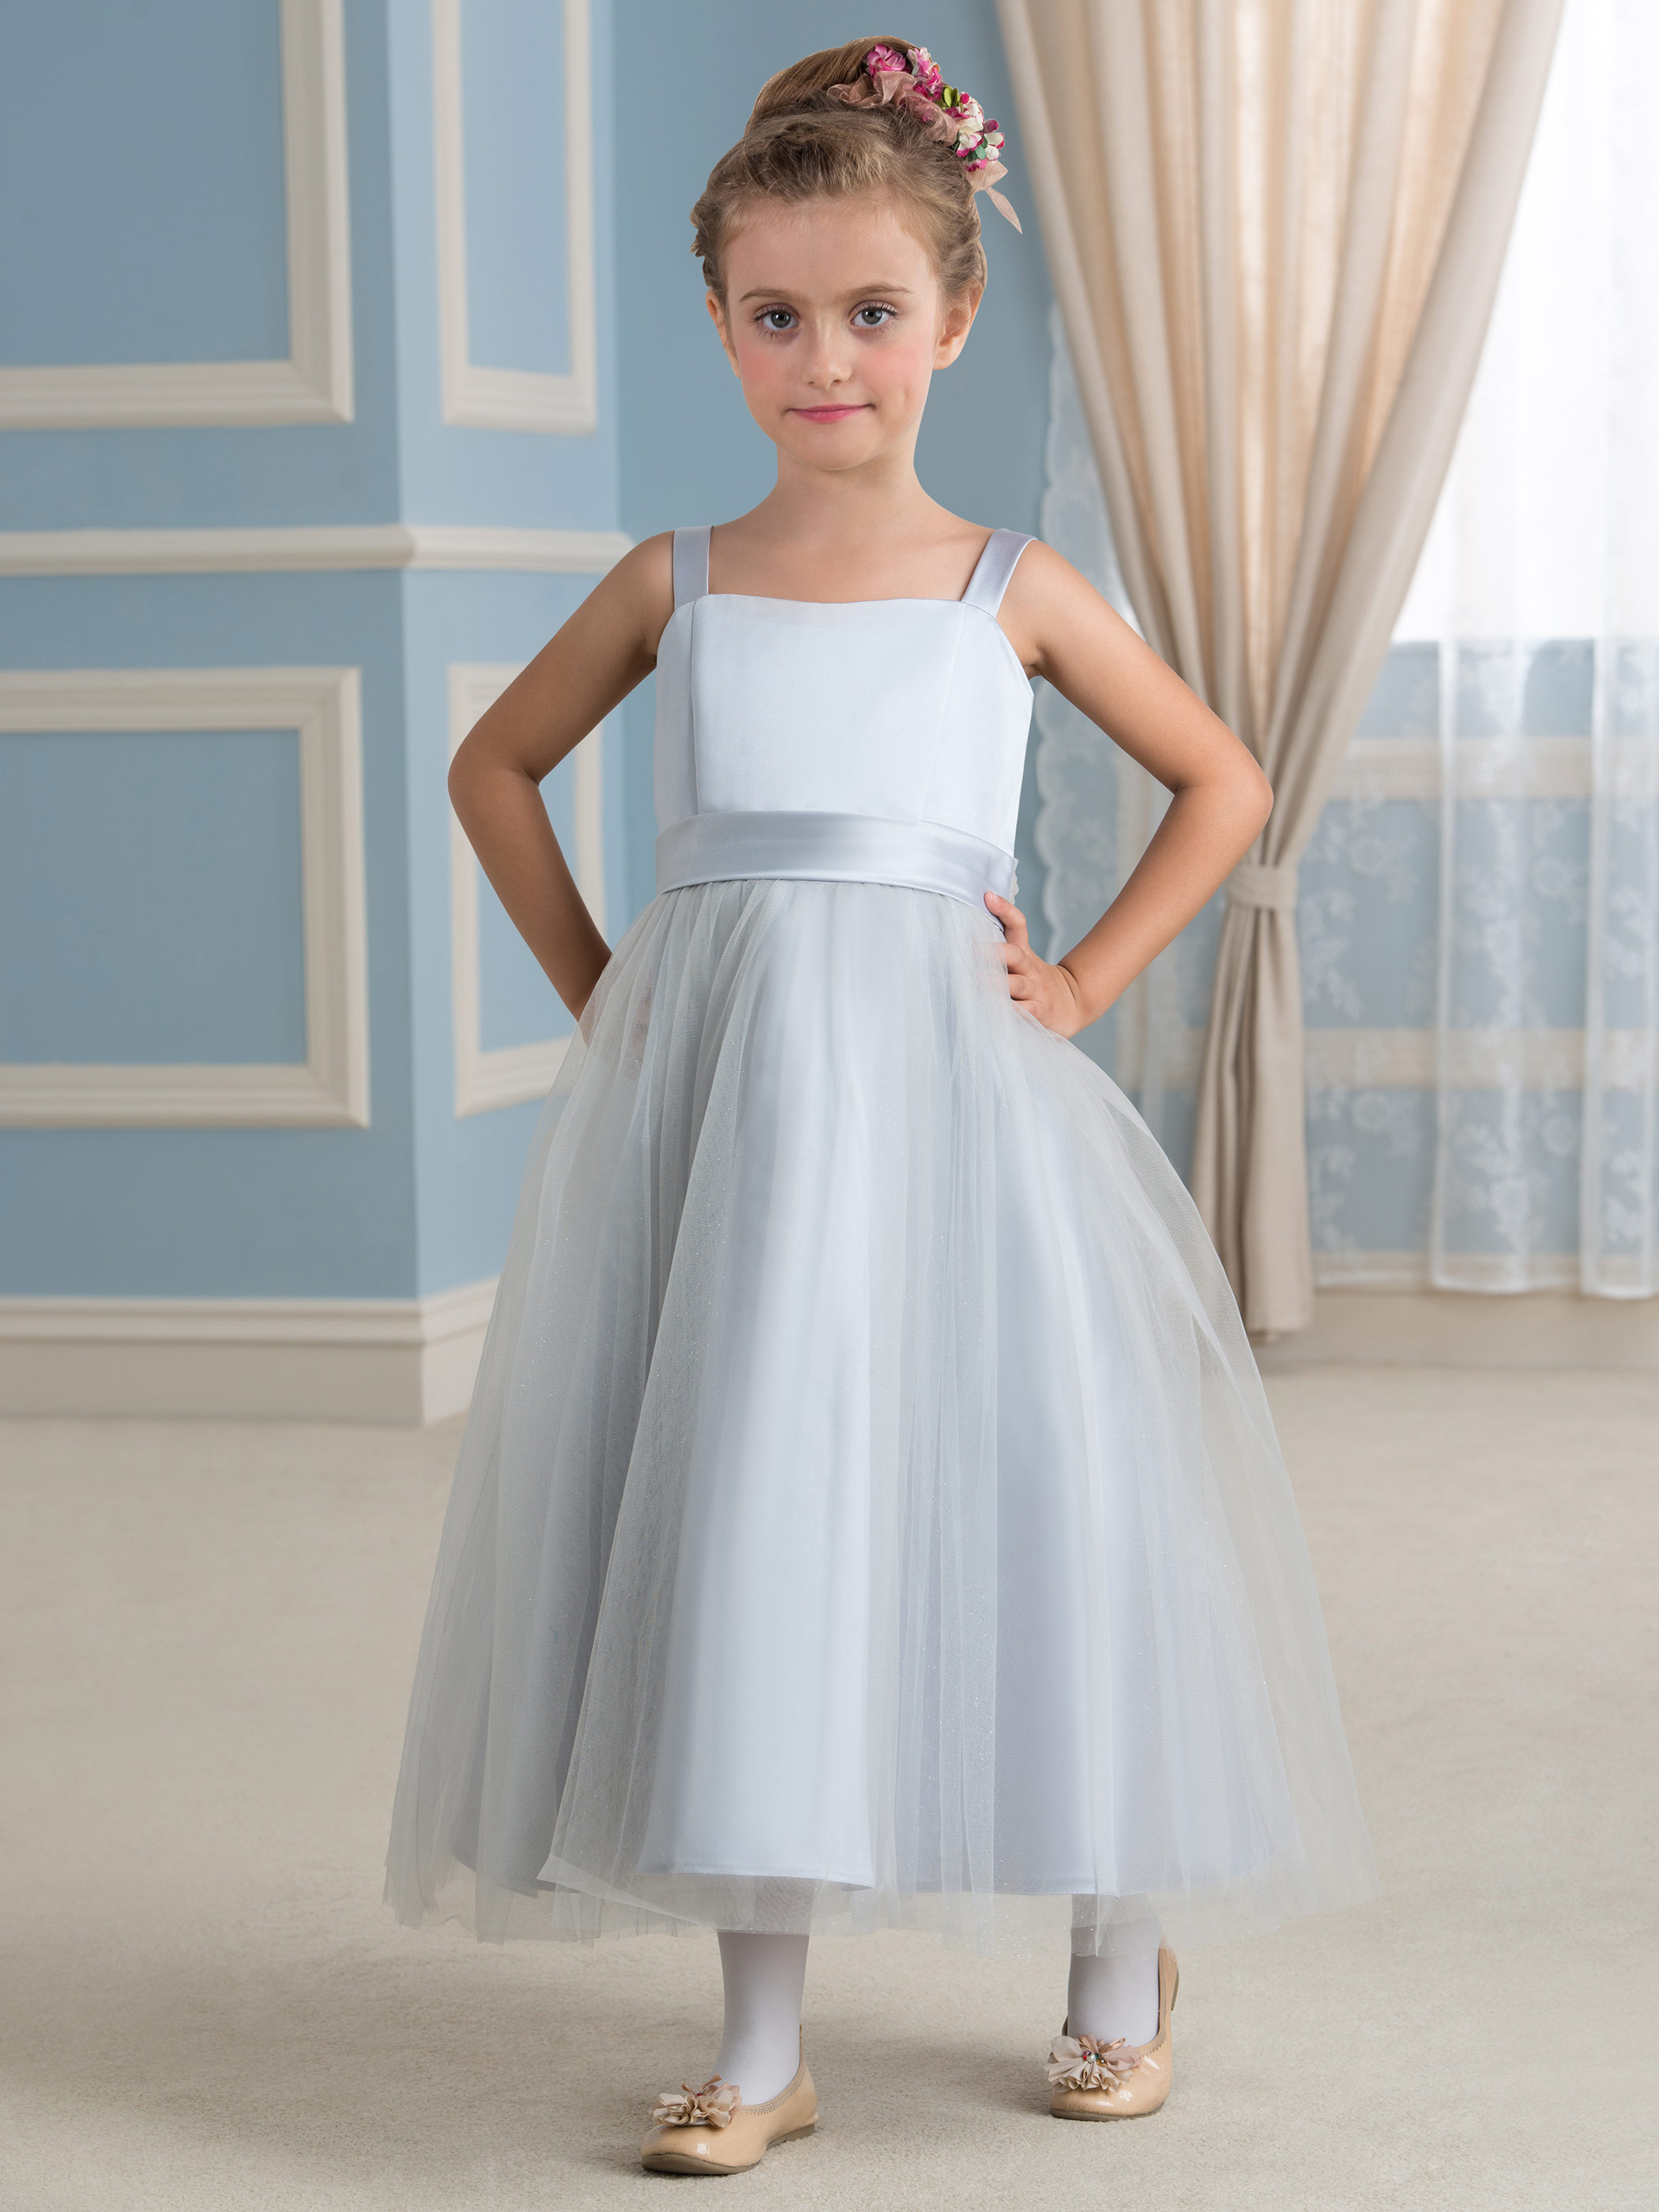 Wedding Little Girls Dresses cute little girl dress princess flower dresses for wedding lovely communion girls pageant dresses